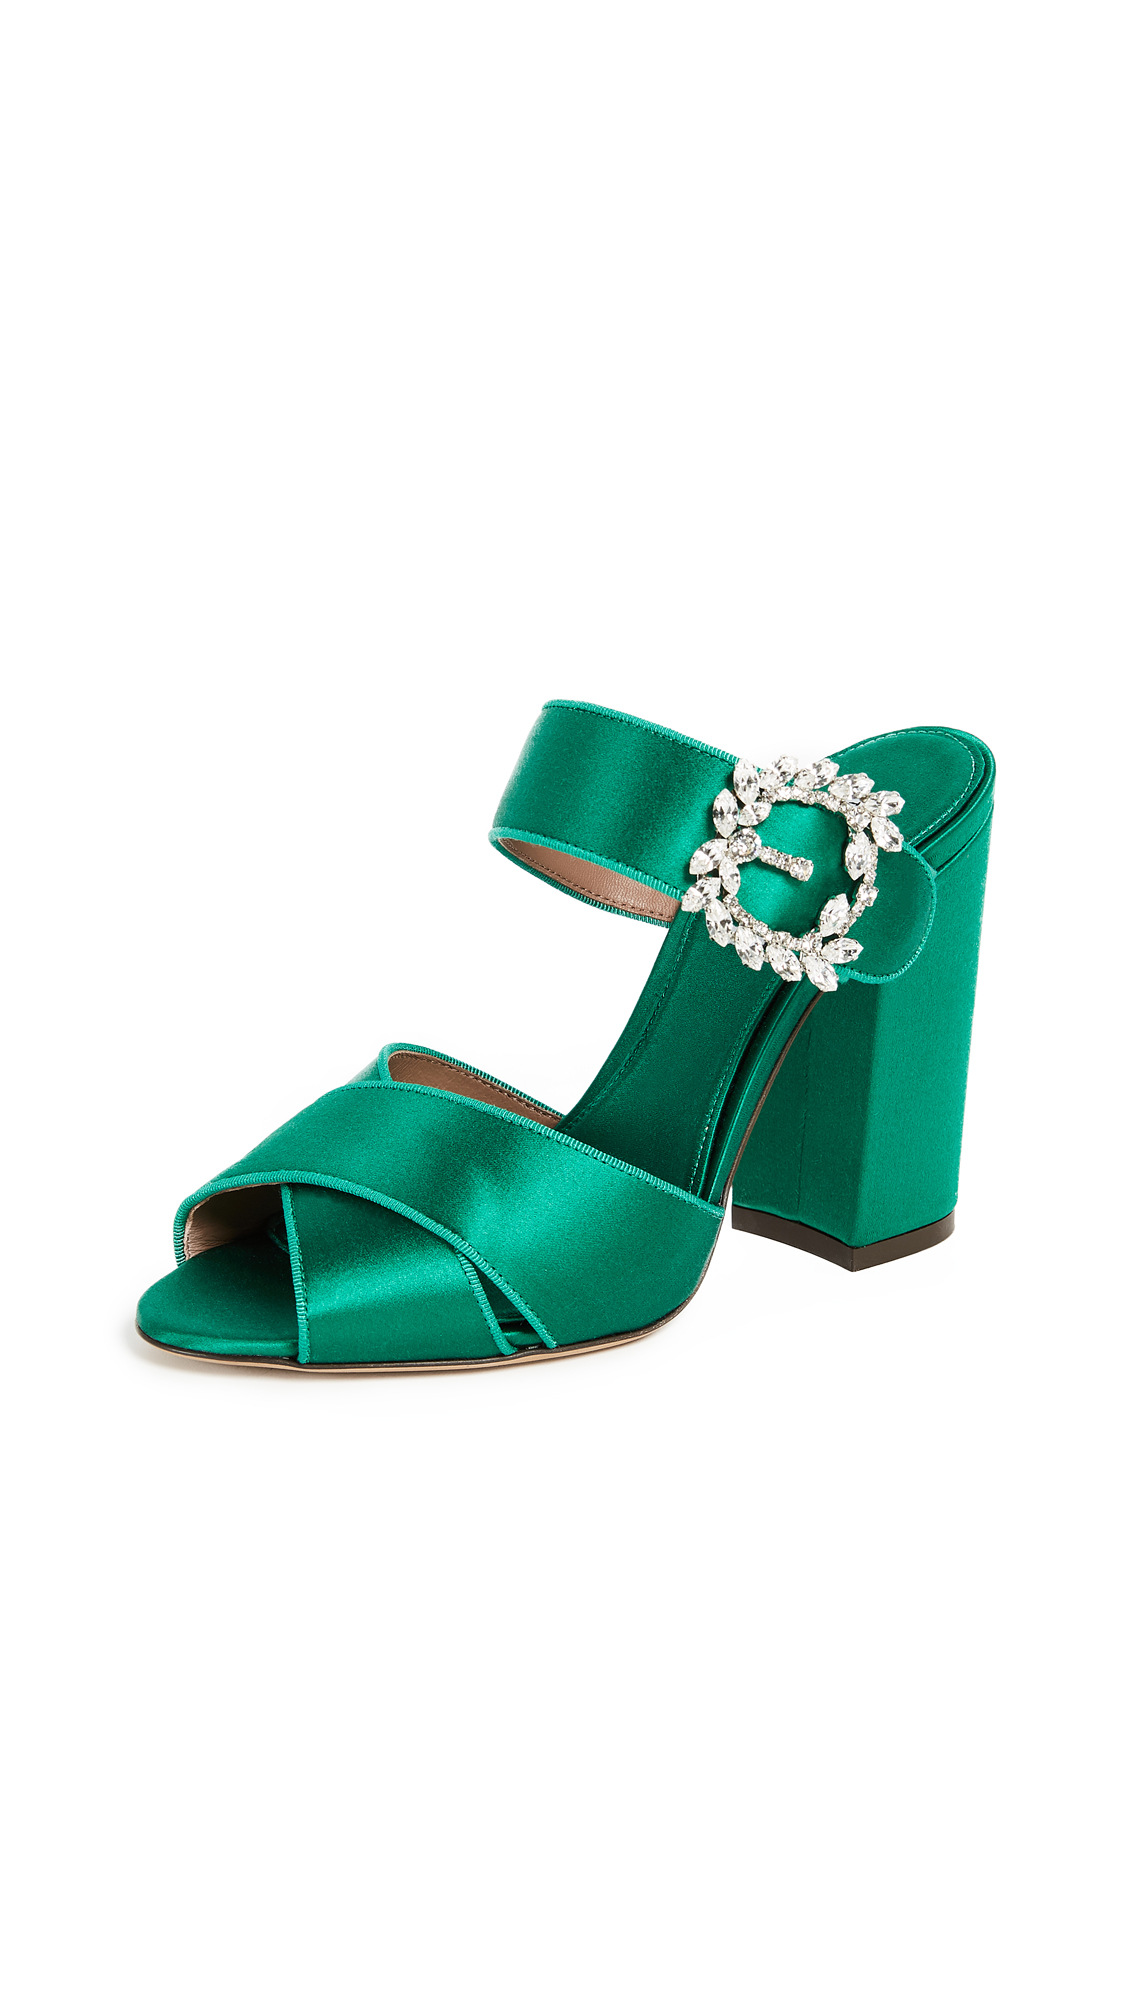 Tabitha Simmons Reyner Pumps - Emerald